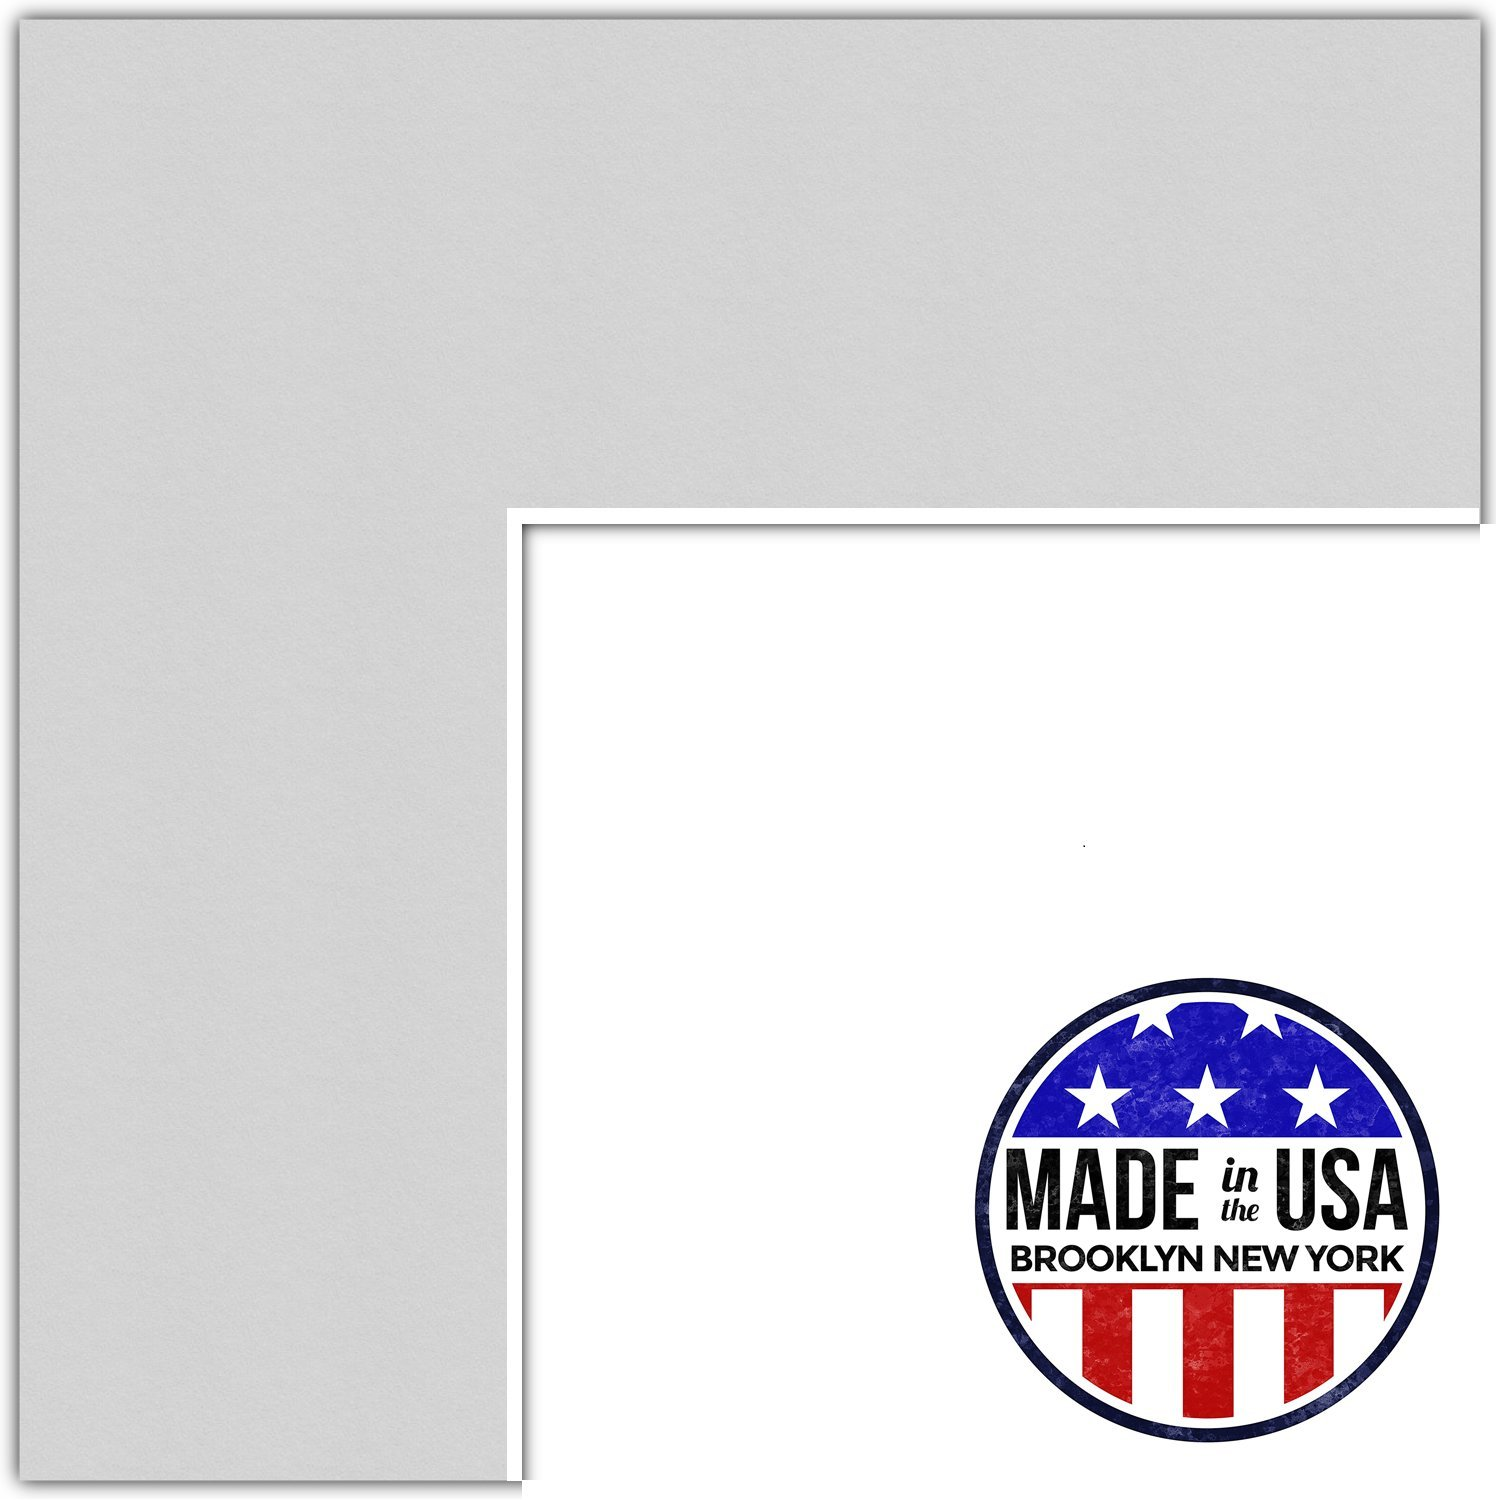 19x23 Clapboard / Candlewick Custom Mat for Picture Frame with 15x19 opening size (Mat Only, Frame NOT Included) by ArtToFrames